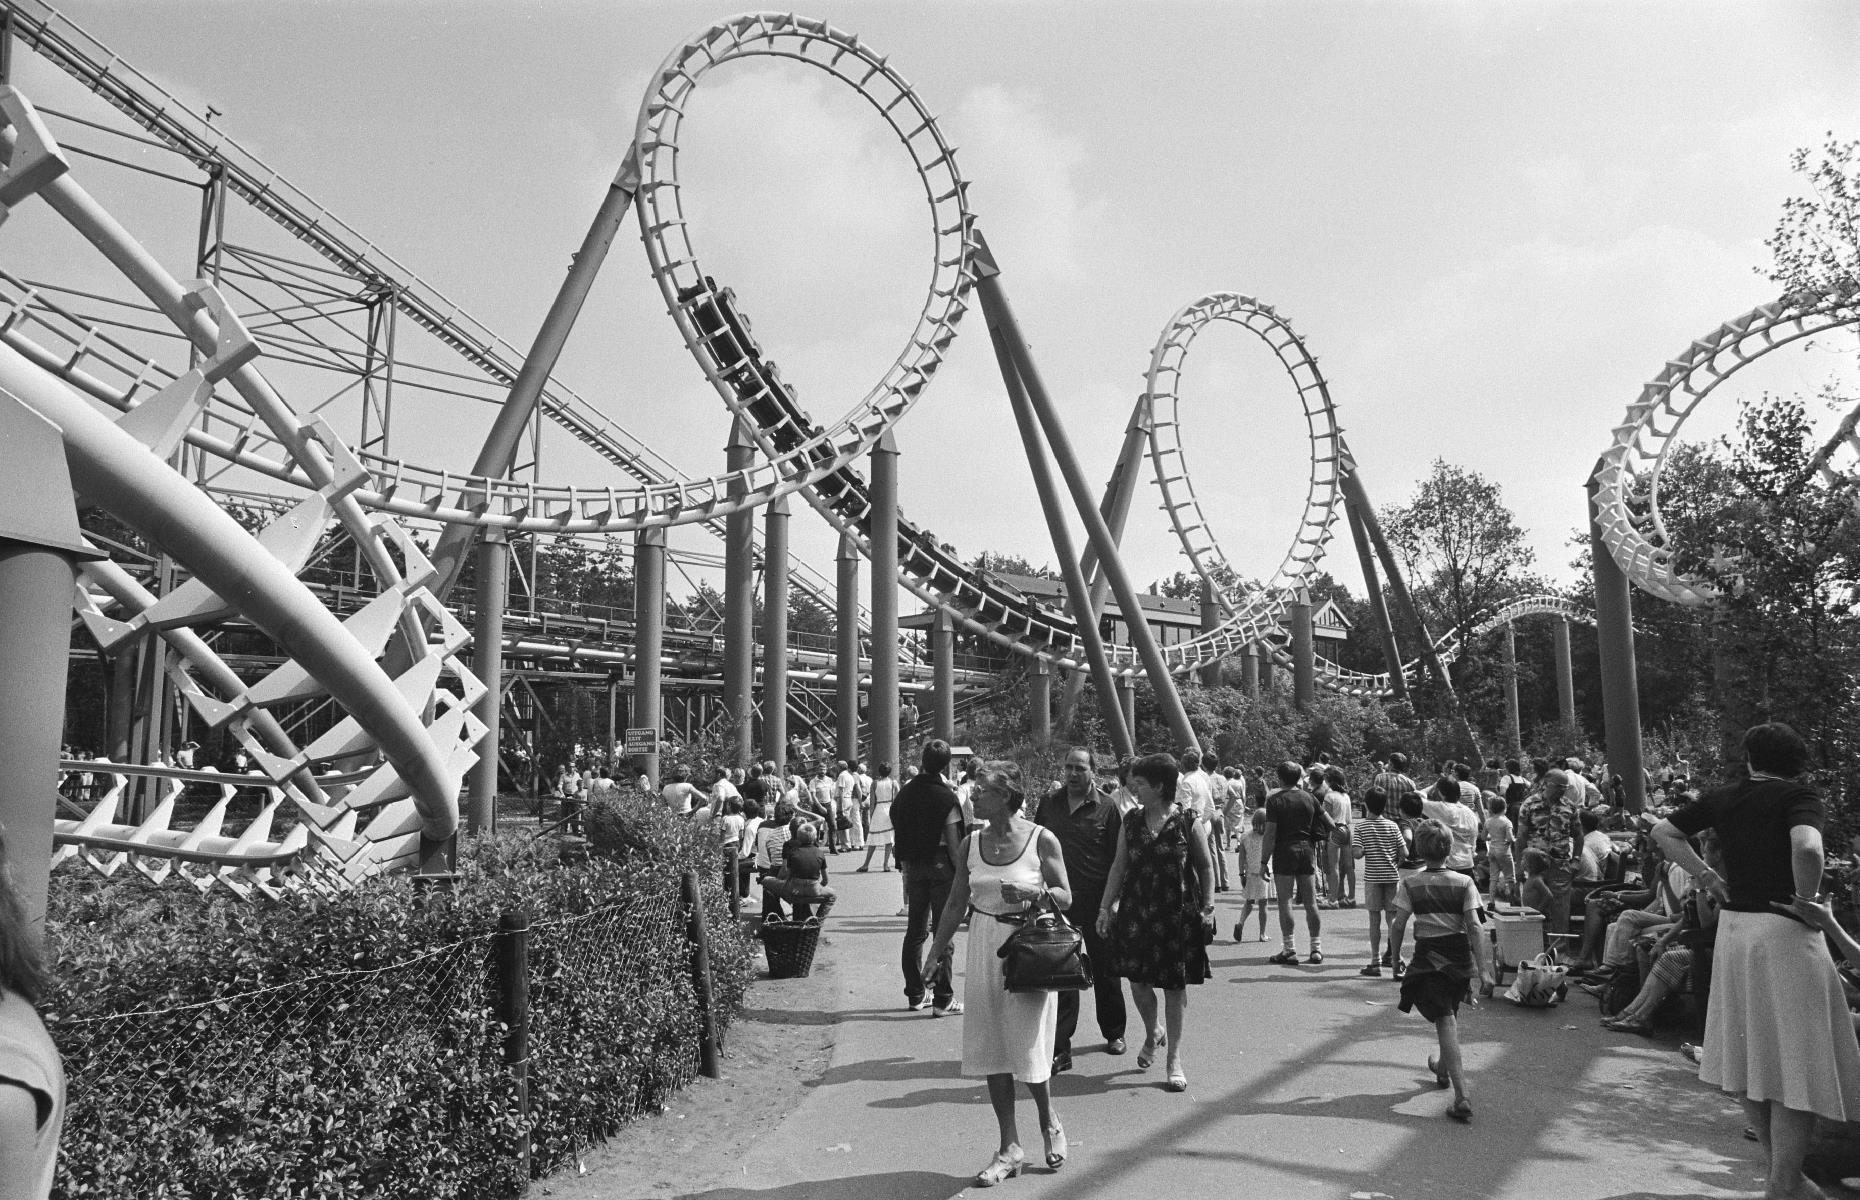 Slide 32 of 38: It wasn't just America's larger-than-life theme parks that were drawing family travelers, either. The Netherlands' Efteling – often tipped as one of Europe's greatest theme parks – drew scores of tourists too. Opened in the Fifties, the park was booming by the Eighties, and this shot shows families wandering through the site, dwarfed by the titanic loops of the Python roller coaster.